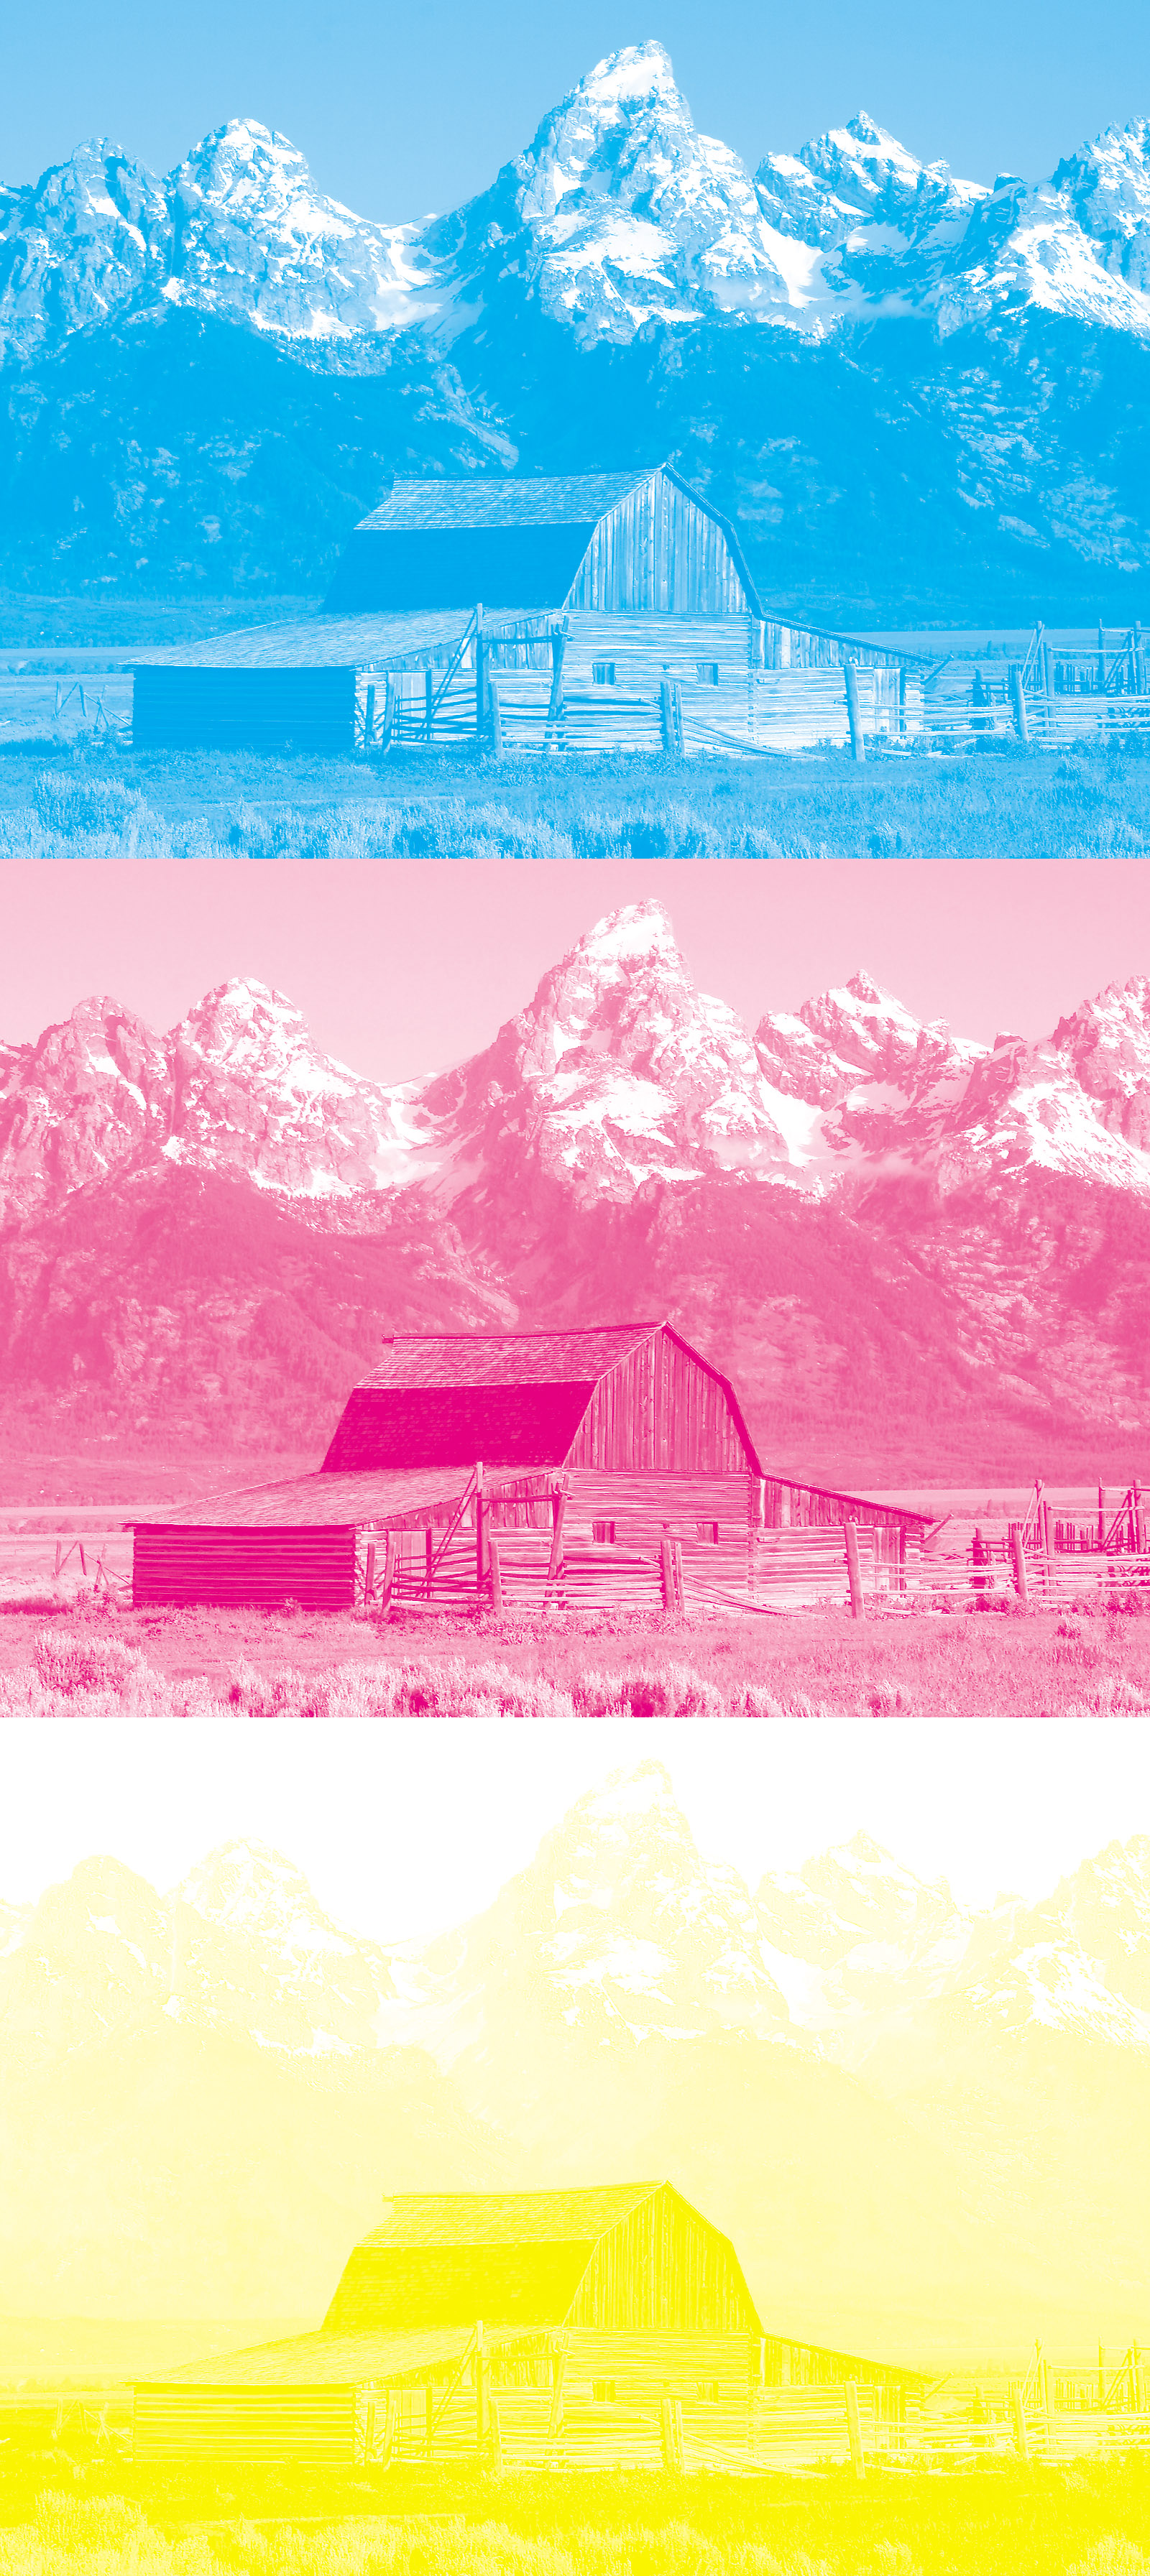 The Image Above Separated For Printing With Process Cyan Magenta And Yellow Inks